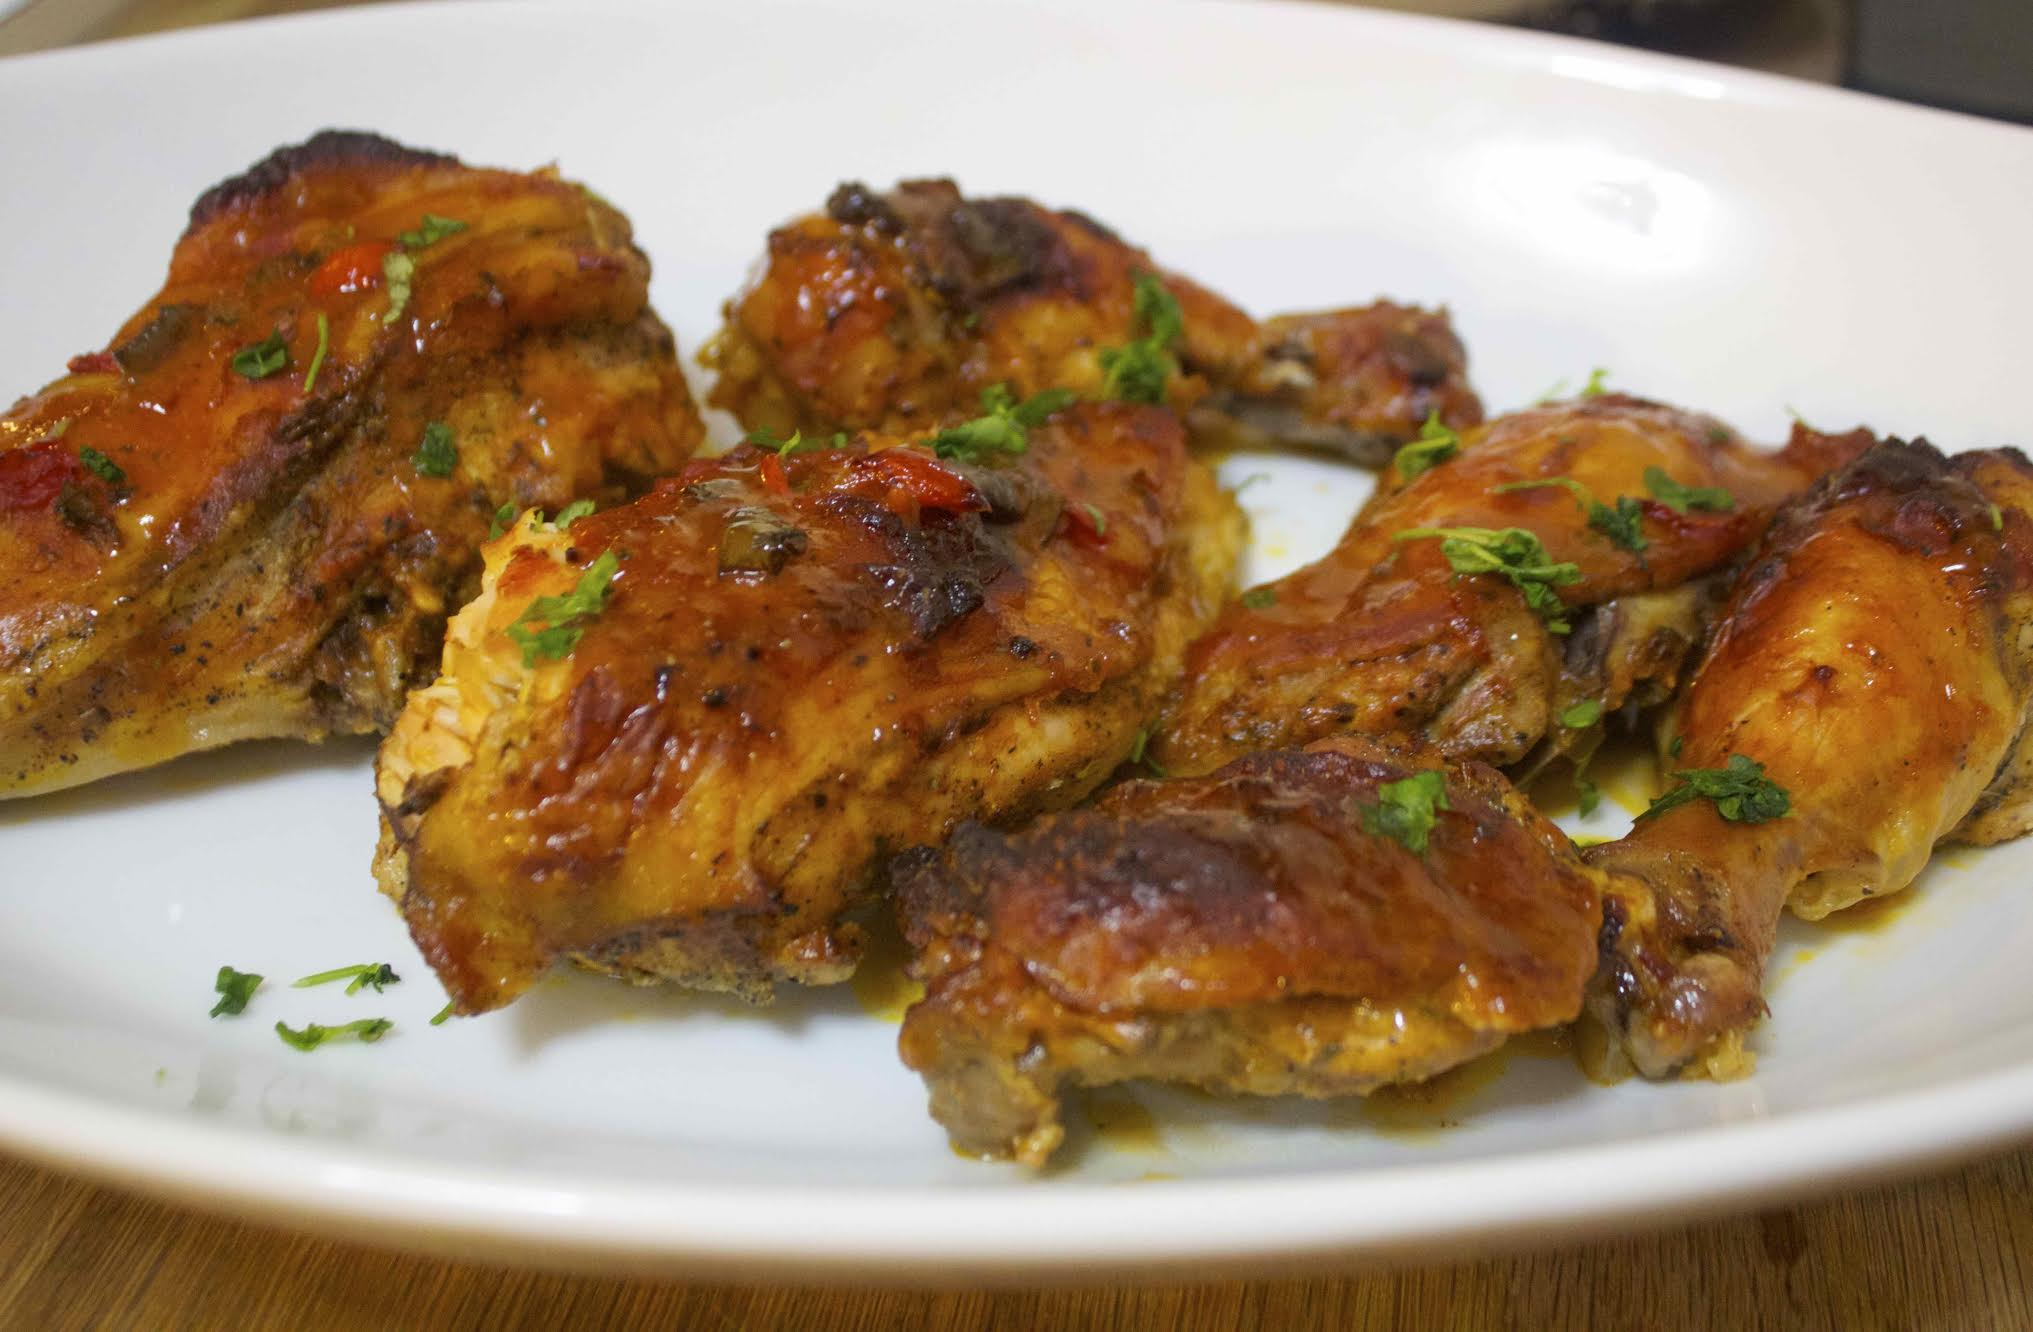 Cuban Roast Chicken or Pollo Asado is a staple in most Latin cuisines.